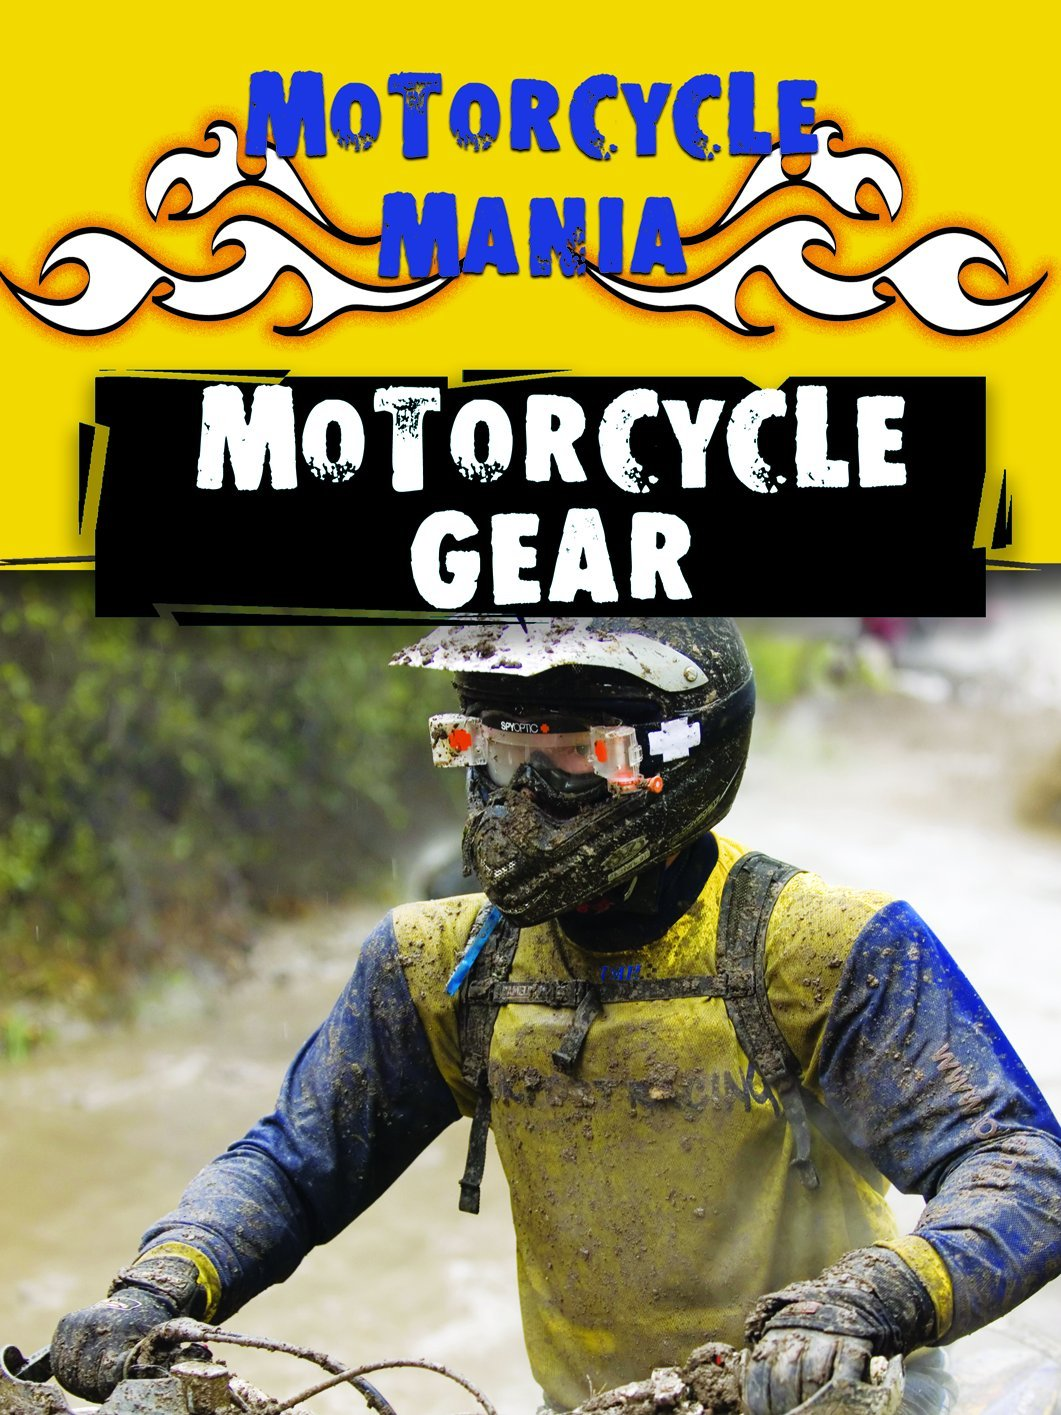 Motorcycle Gear (Motorcycle Mania) Hardcover – November 13, 2007 David Armentrout Patricia Armentrout Rourke Educational Media 1600445888